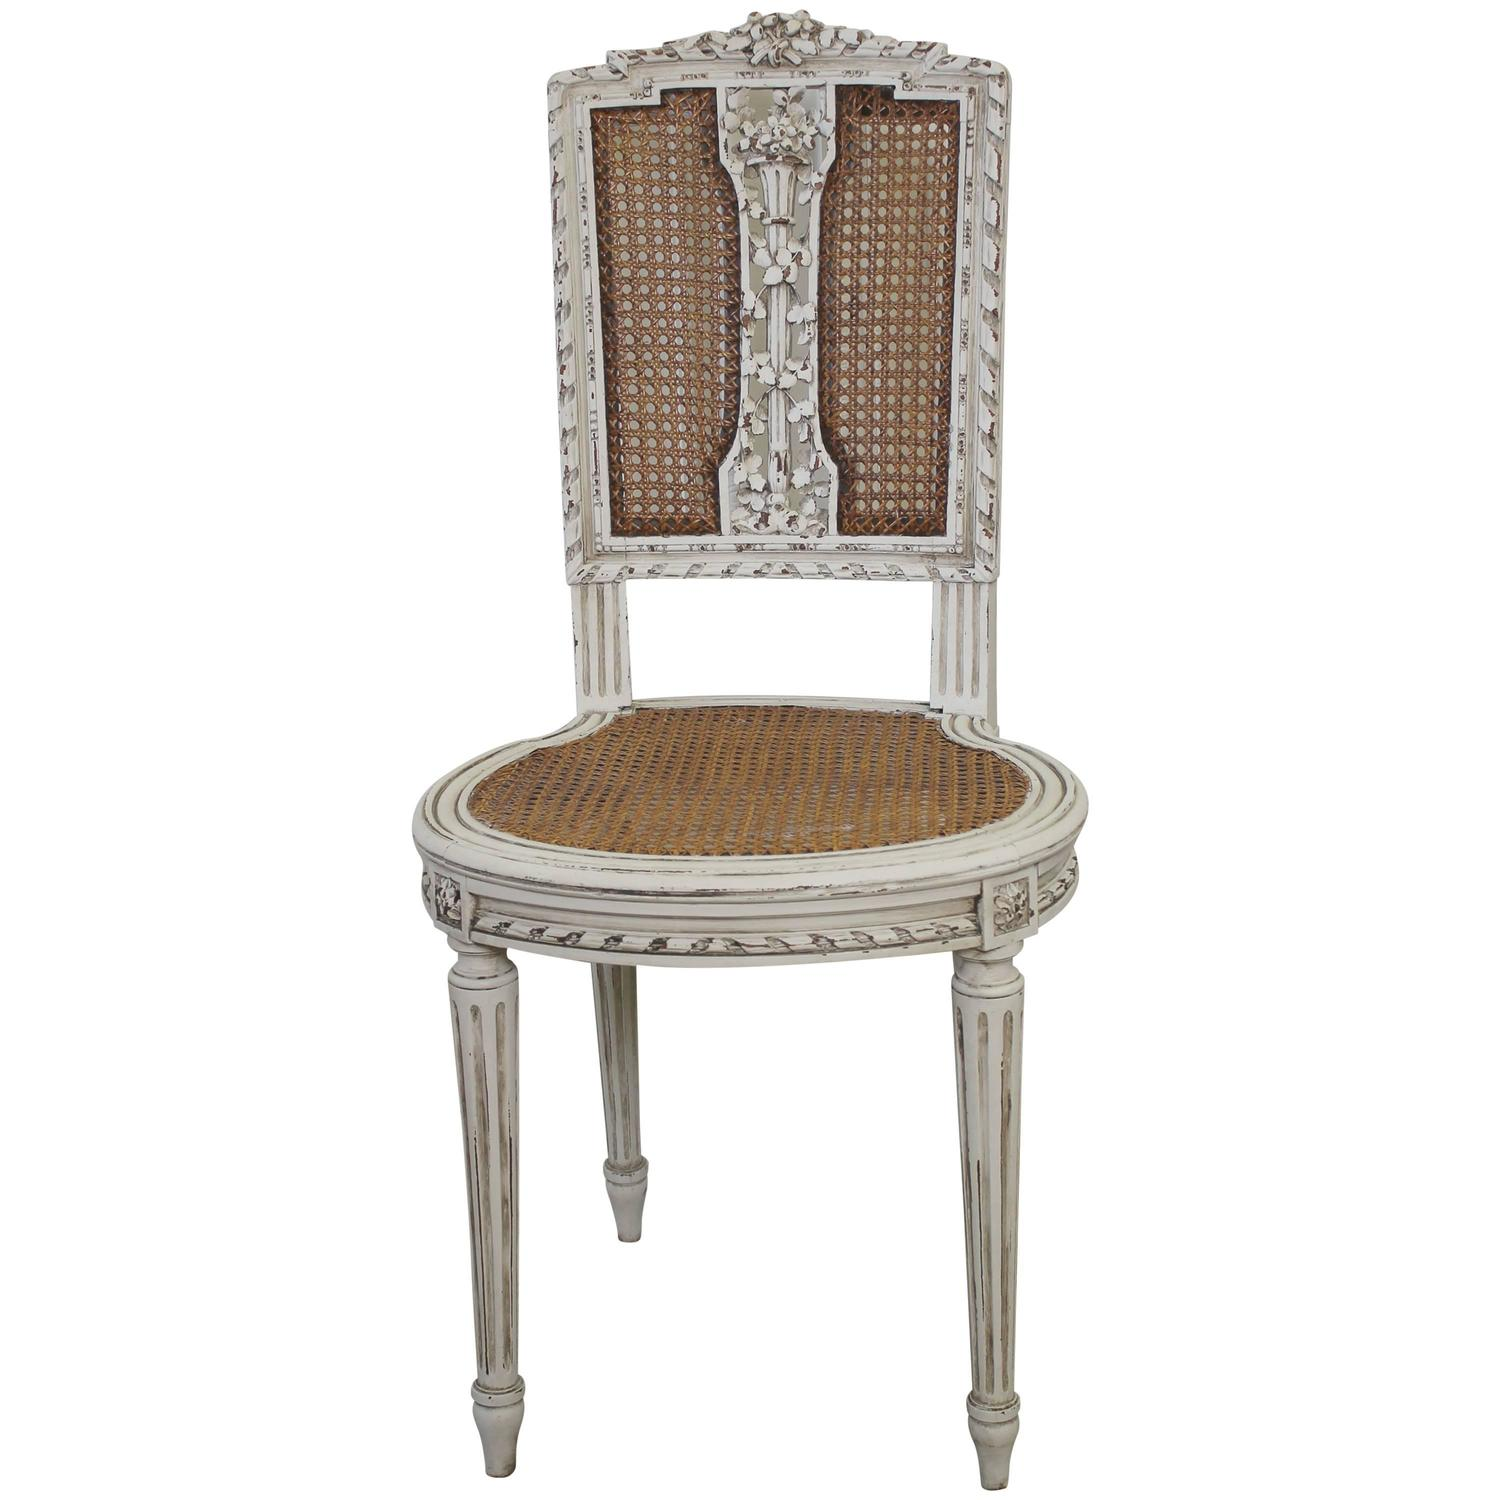 Antique Louis XVI Cane Back Vanity Chair at 1stdibs